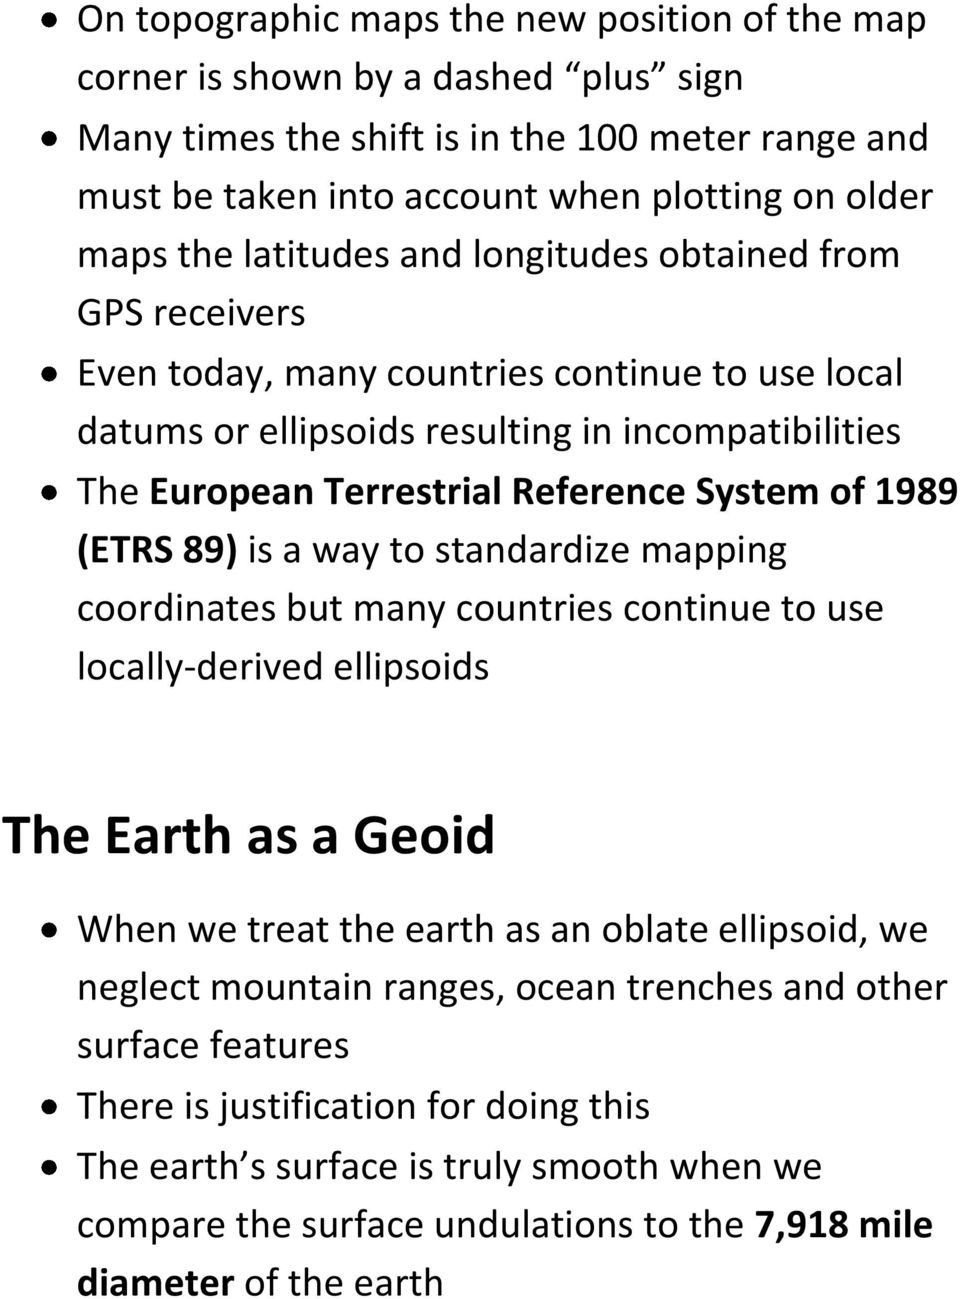 1989 (ETRS 89) is a way to standardize mapping coordinates but many countries continue to use locally-derived ellipsoids The Earth as a Geoid When we treat the earth as an oblate ellipsoid, we